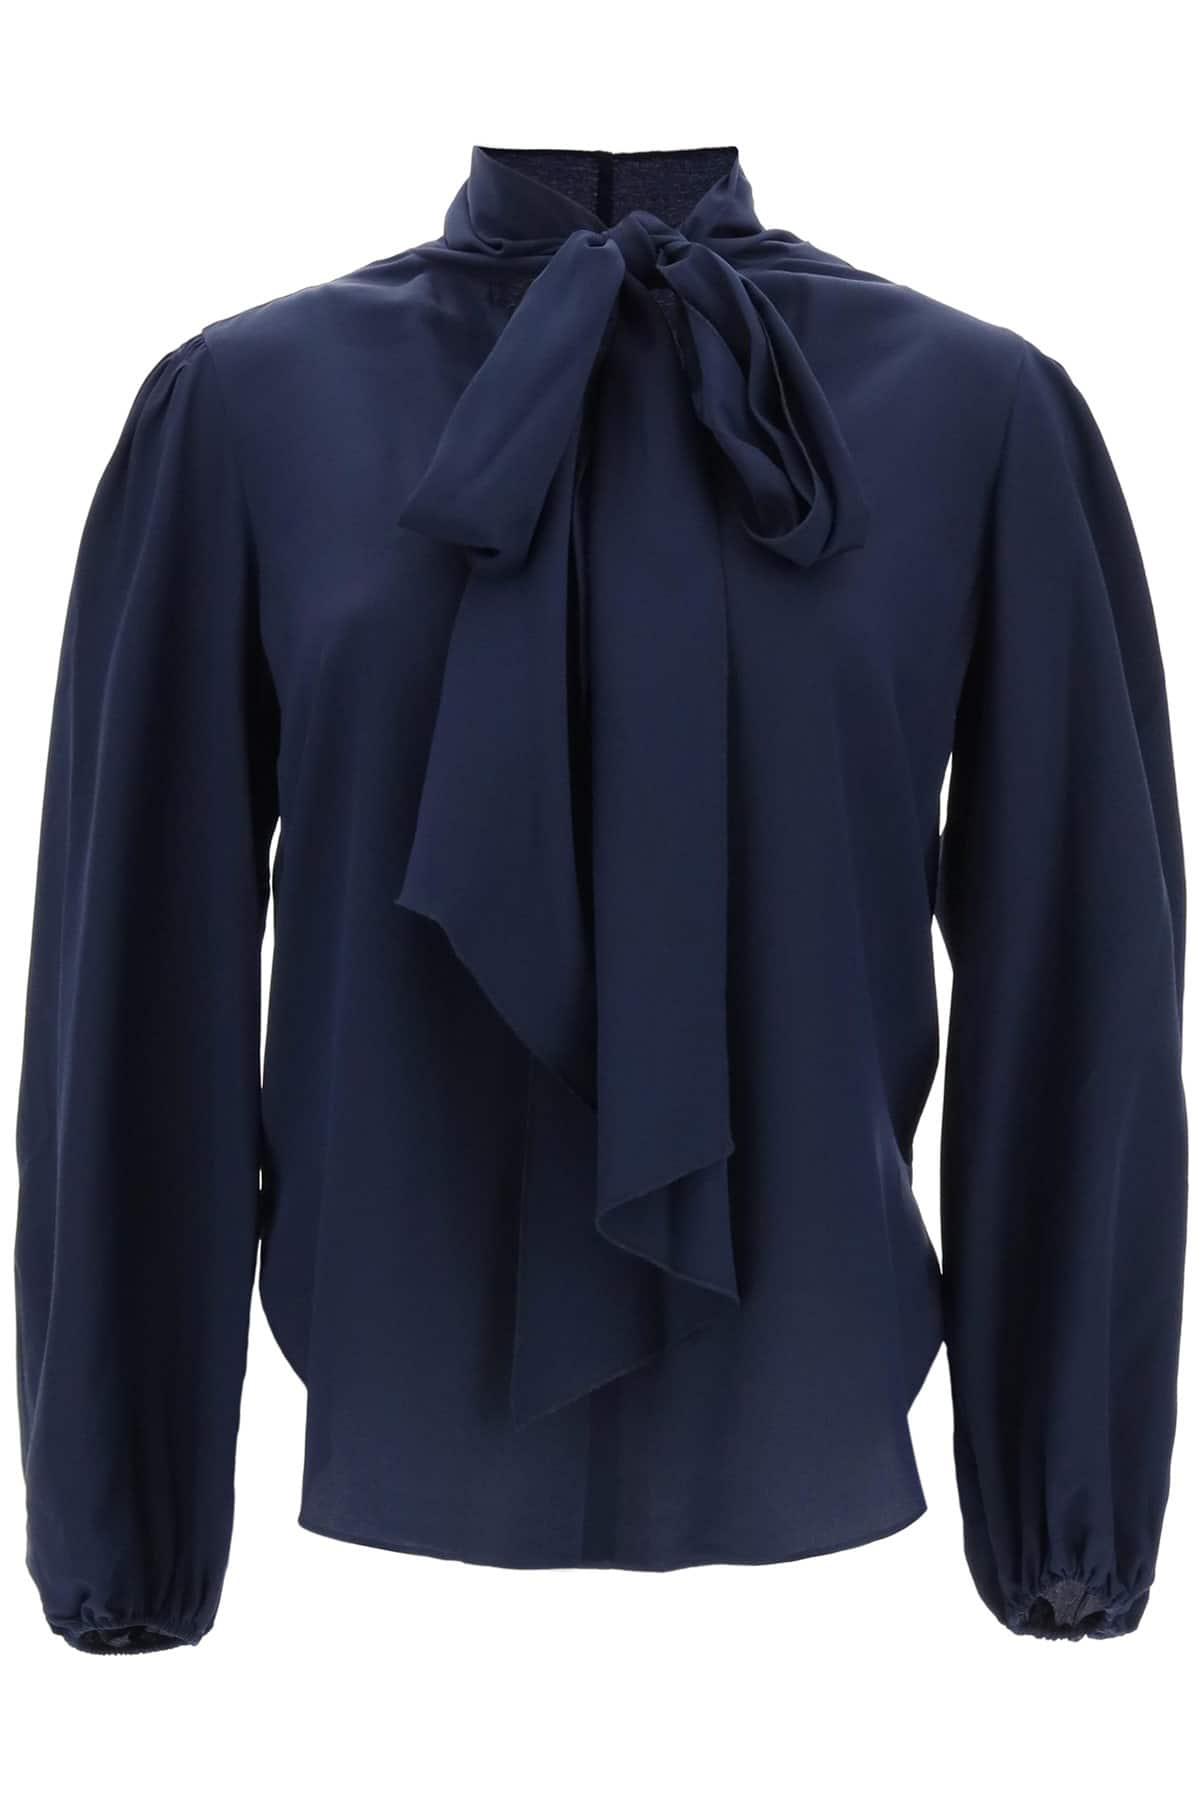 SEE BY CHLOE BLOUSE WITH LAVALLIERE 36 Blue Silk